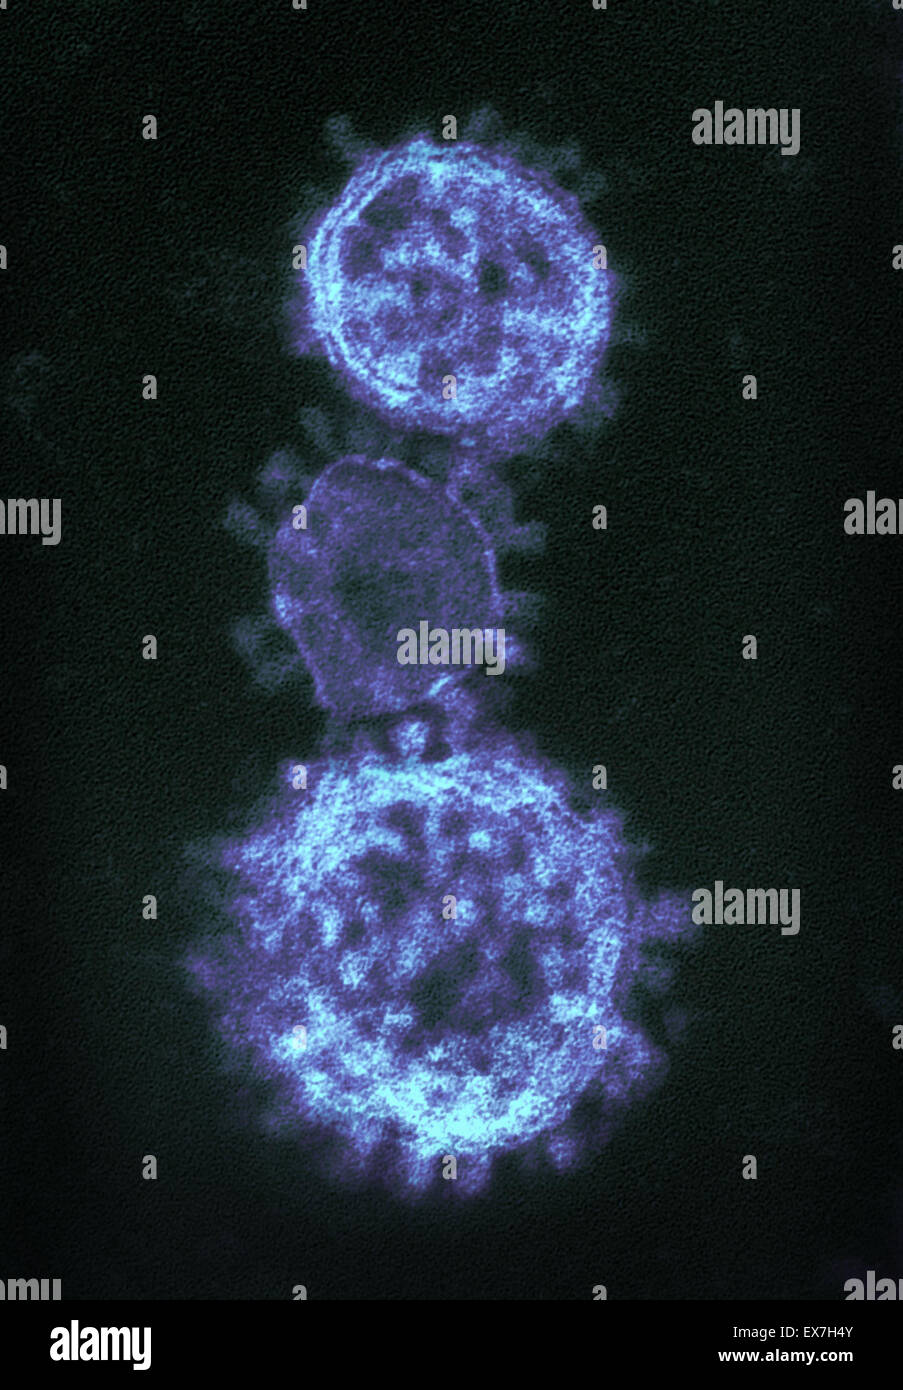 Colorized transmission electron micrograph of Middle East Respiratory Syndrome Coronavirus (MERS-CoV) virions - Stock Image